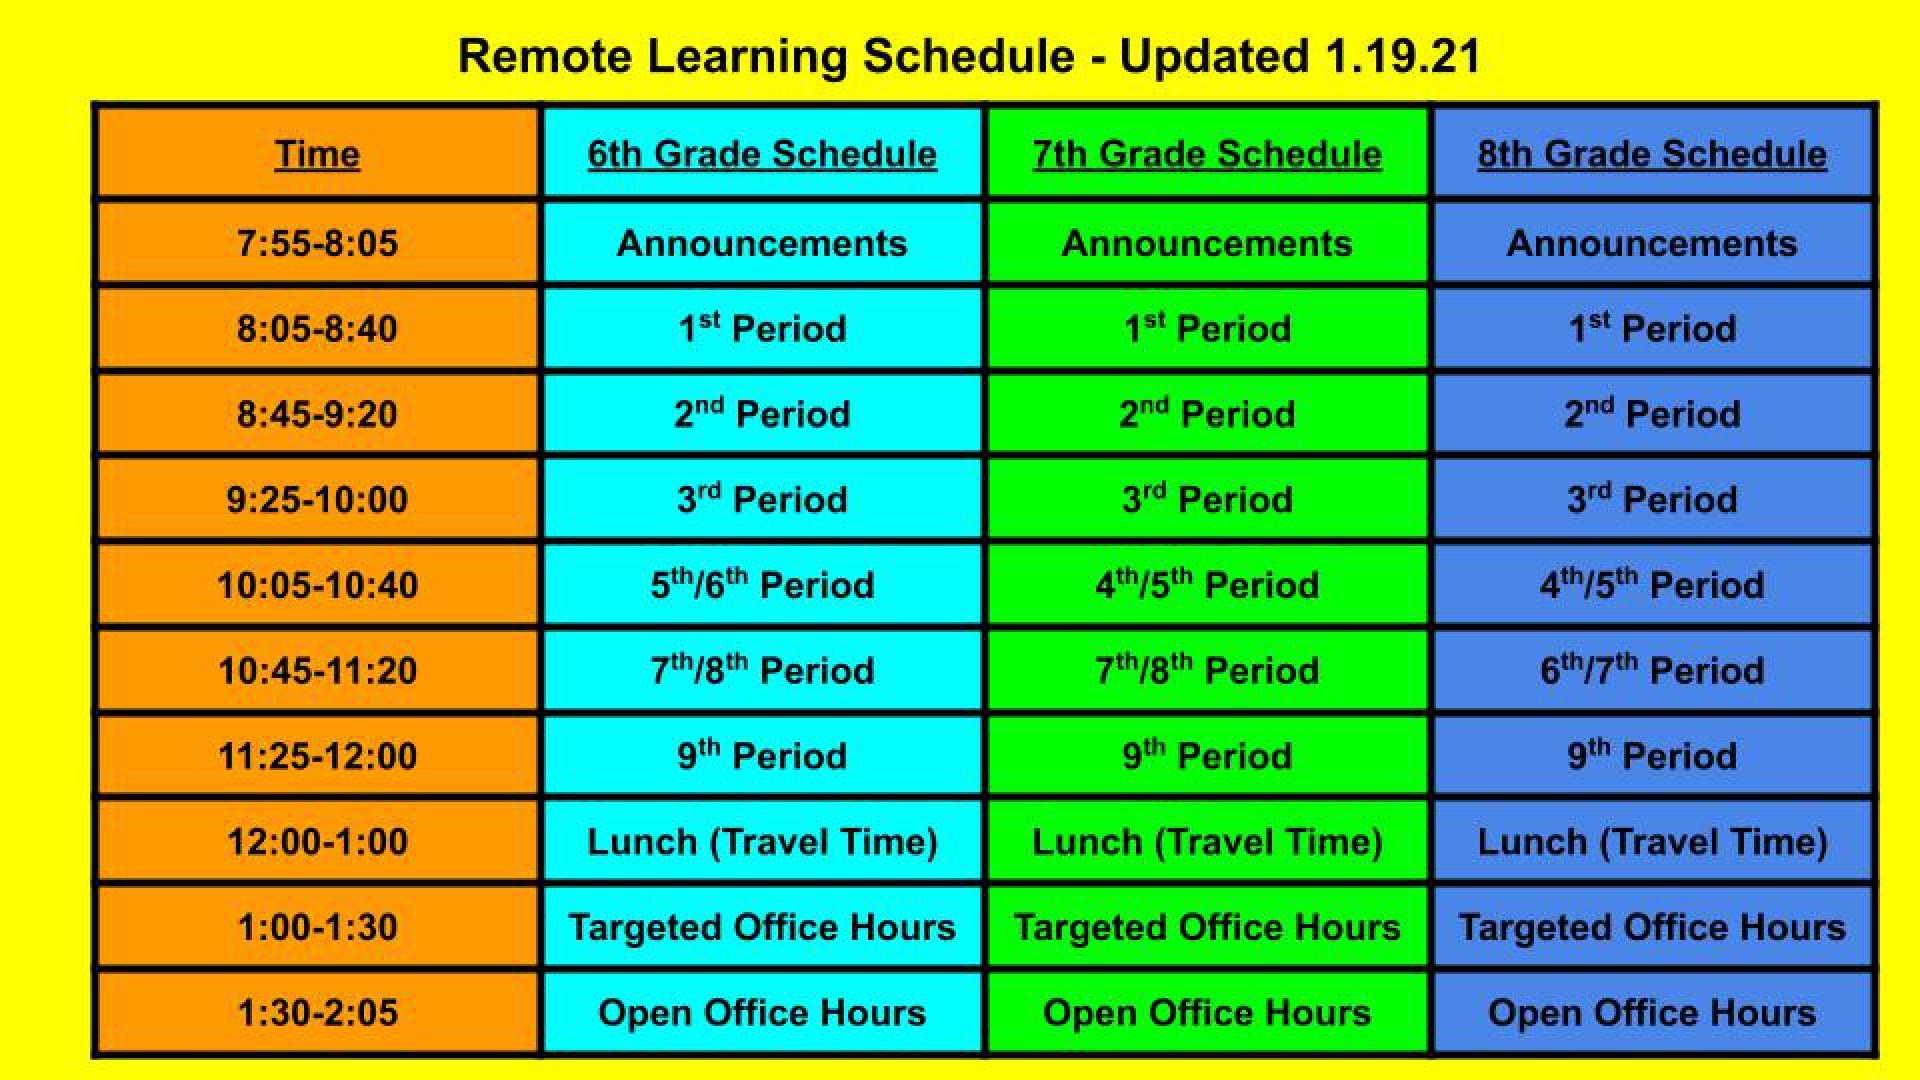 slidshow image - Remote Learning Schedule-Updated 1.19.21 -